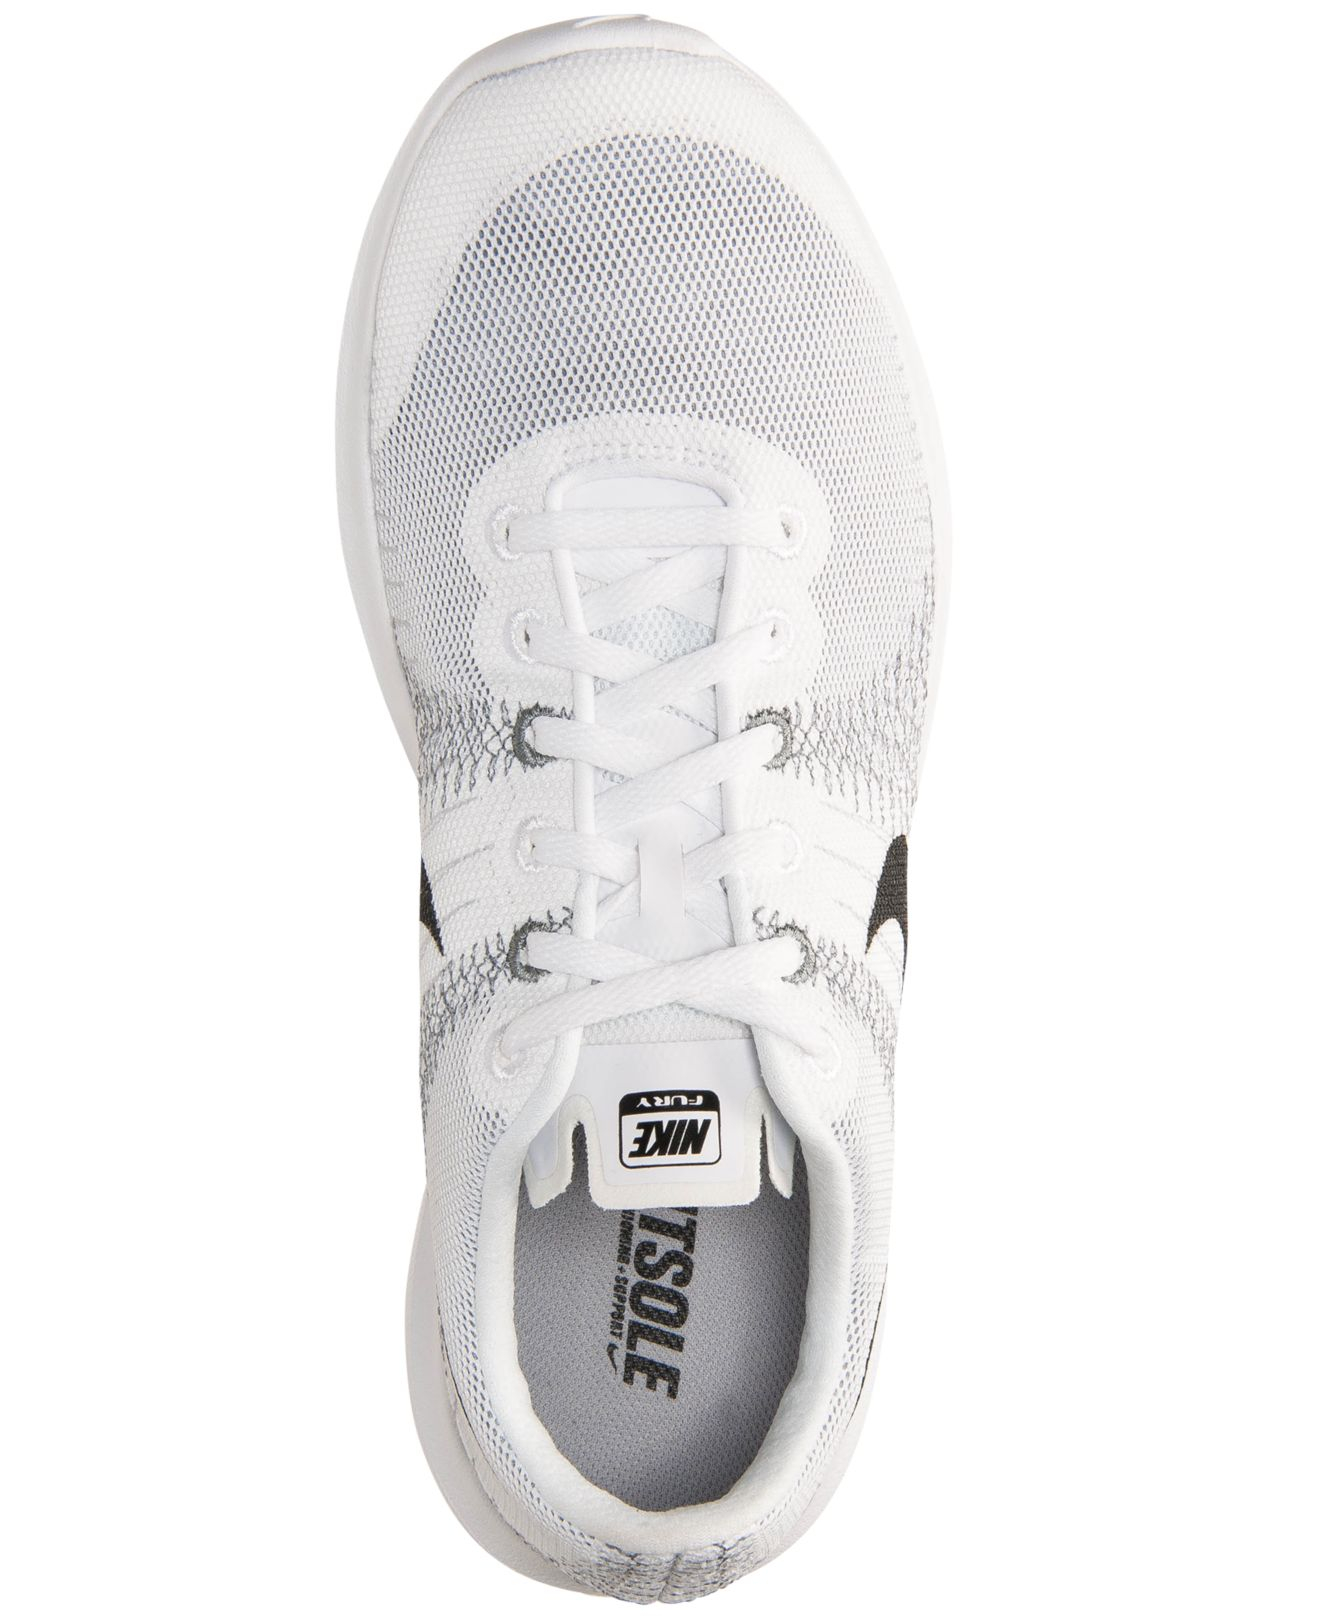 low price 134d5 24e98 ... clearance lyst nike mens flex fury running sneakers from finish line in  dbc07 7fb77